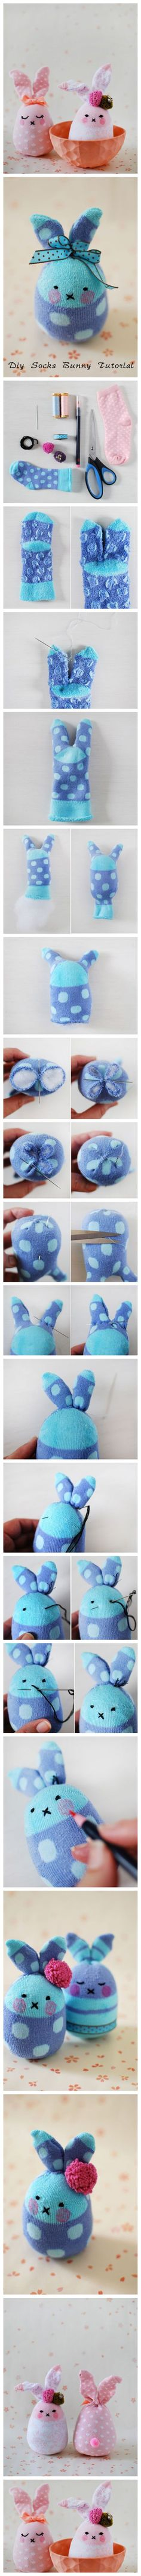 Bricolage Tutorial Lapin Chaussettes